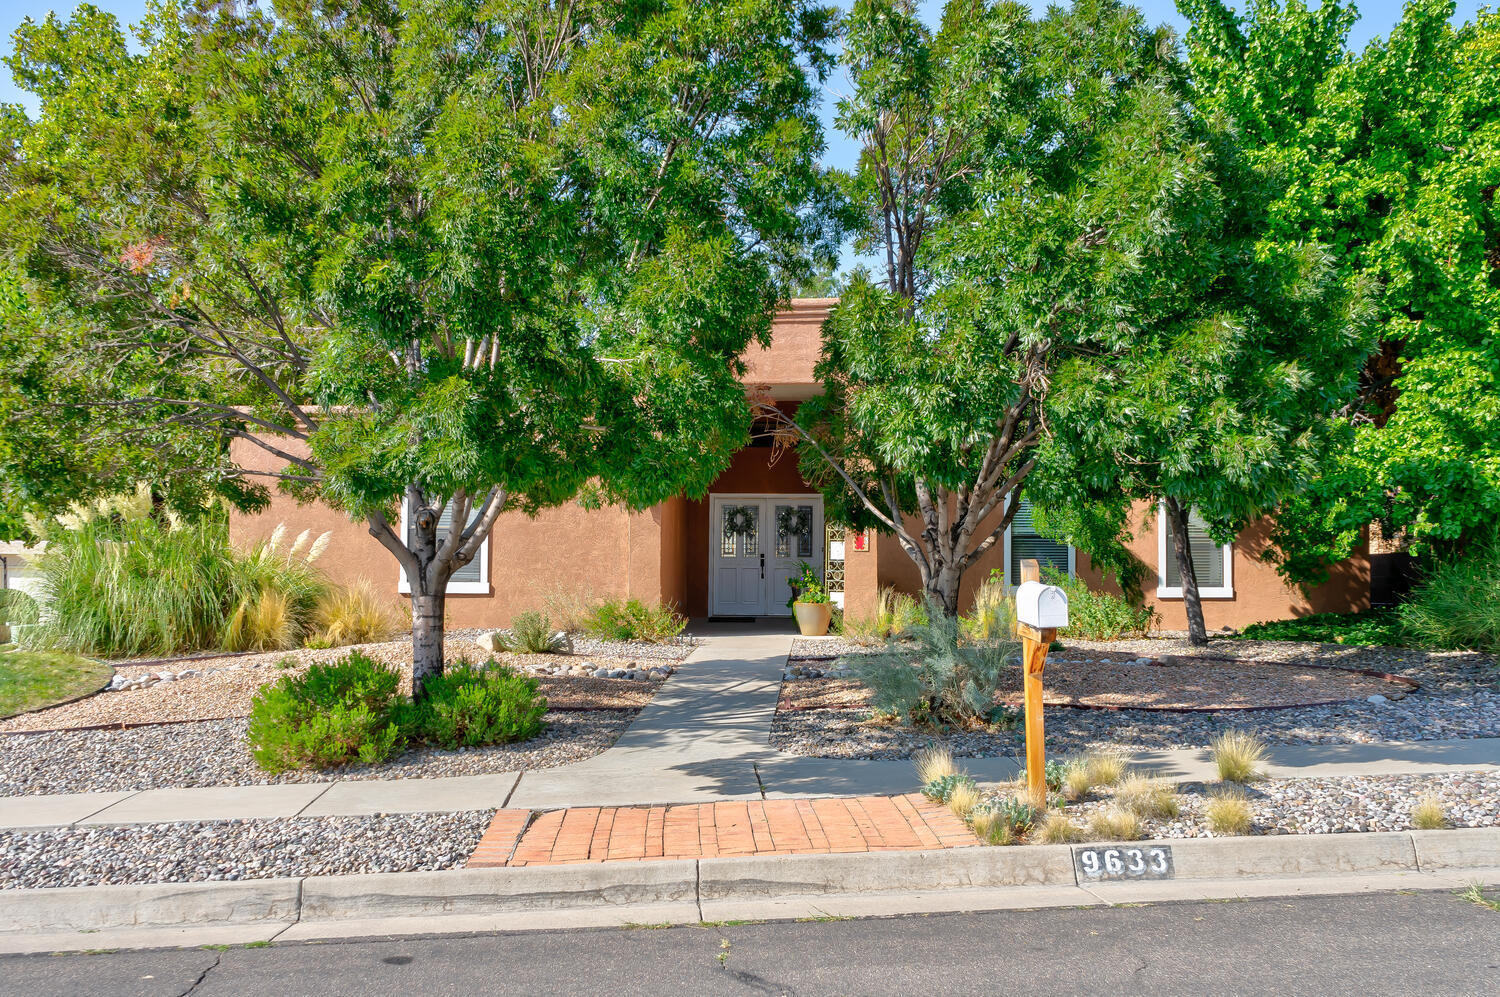 9633 MESSERVY Avenue NE Property Photo - Albuquerque, NM real estate listing